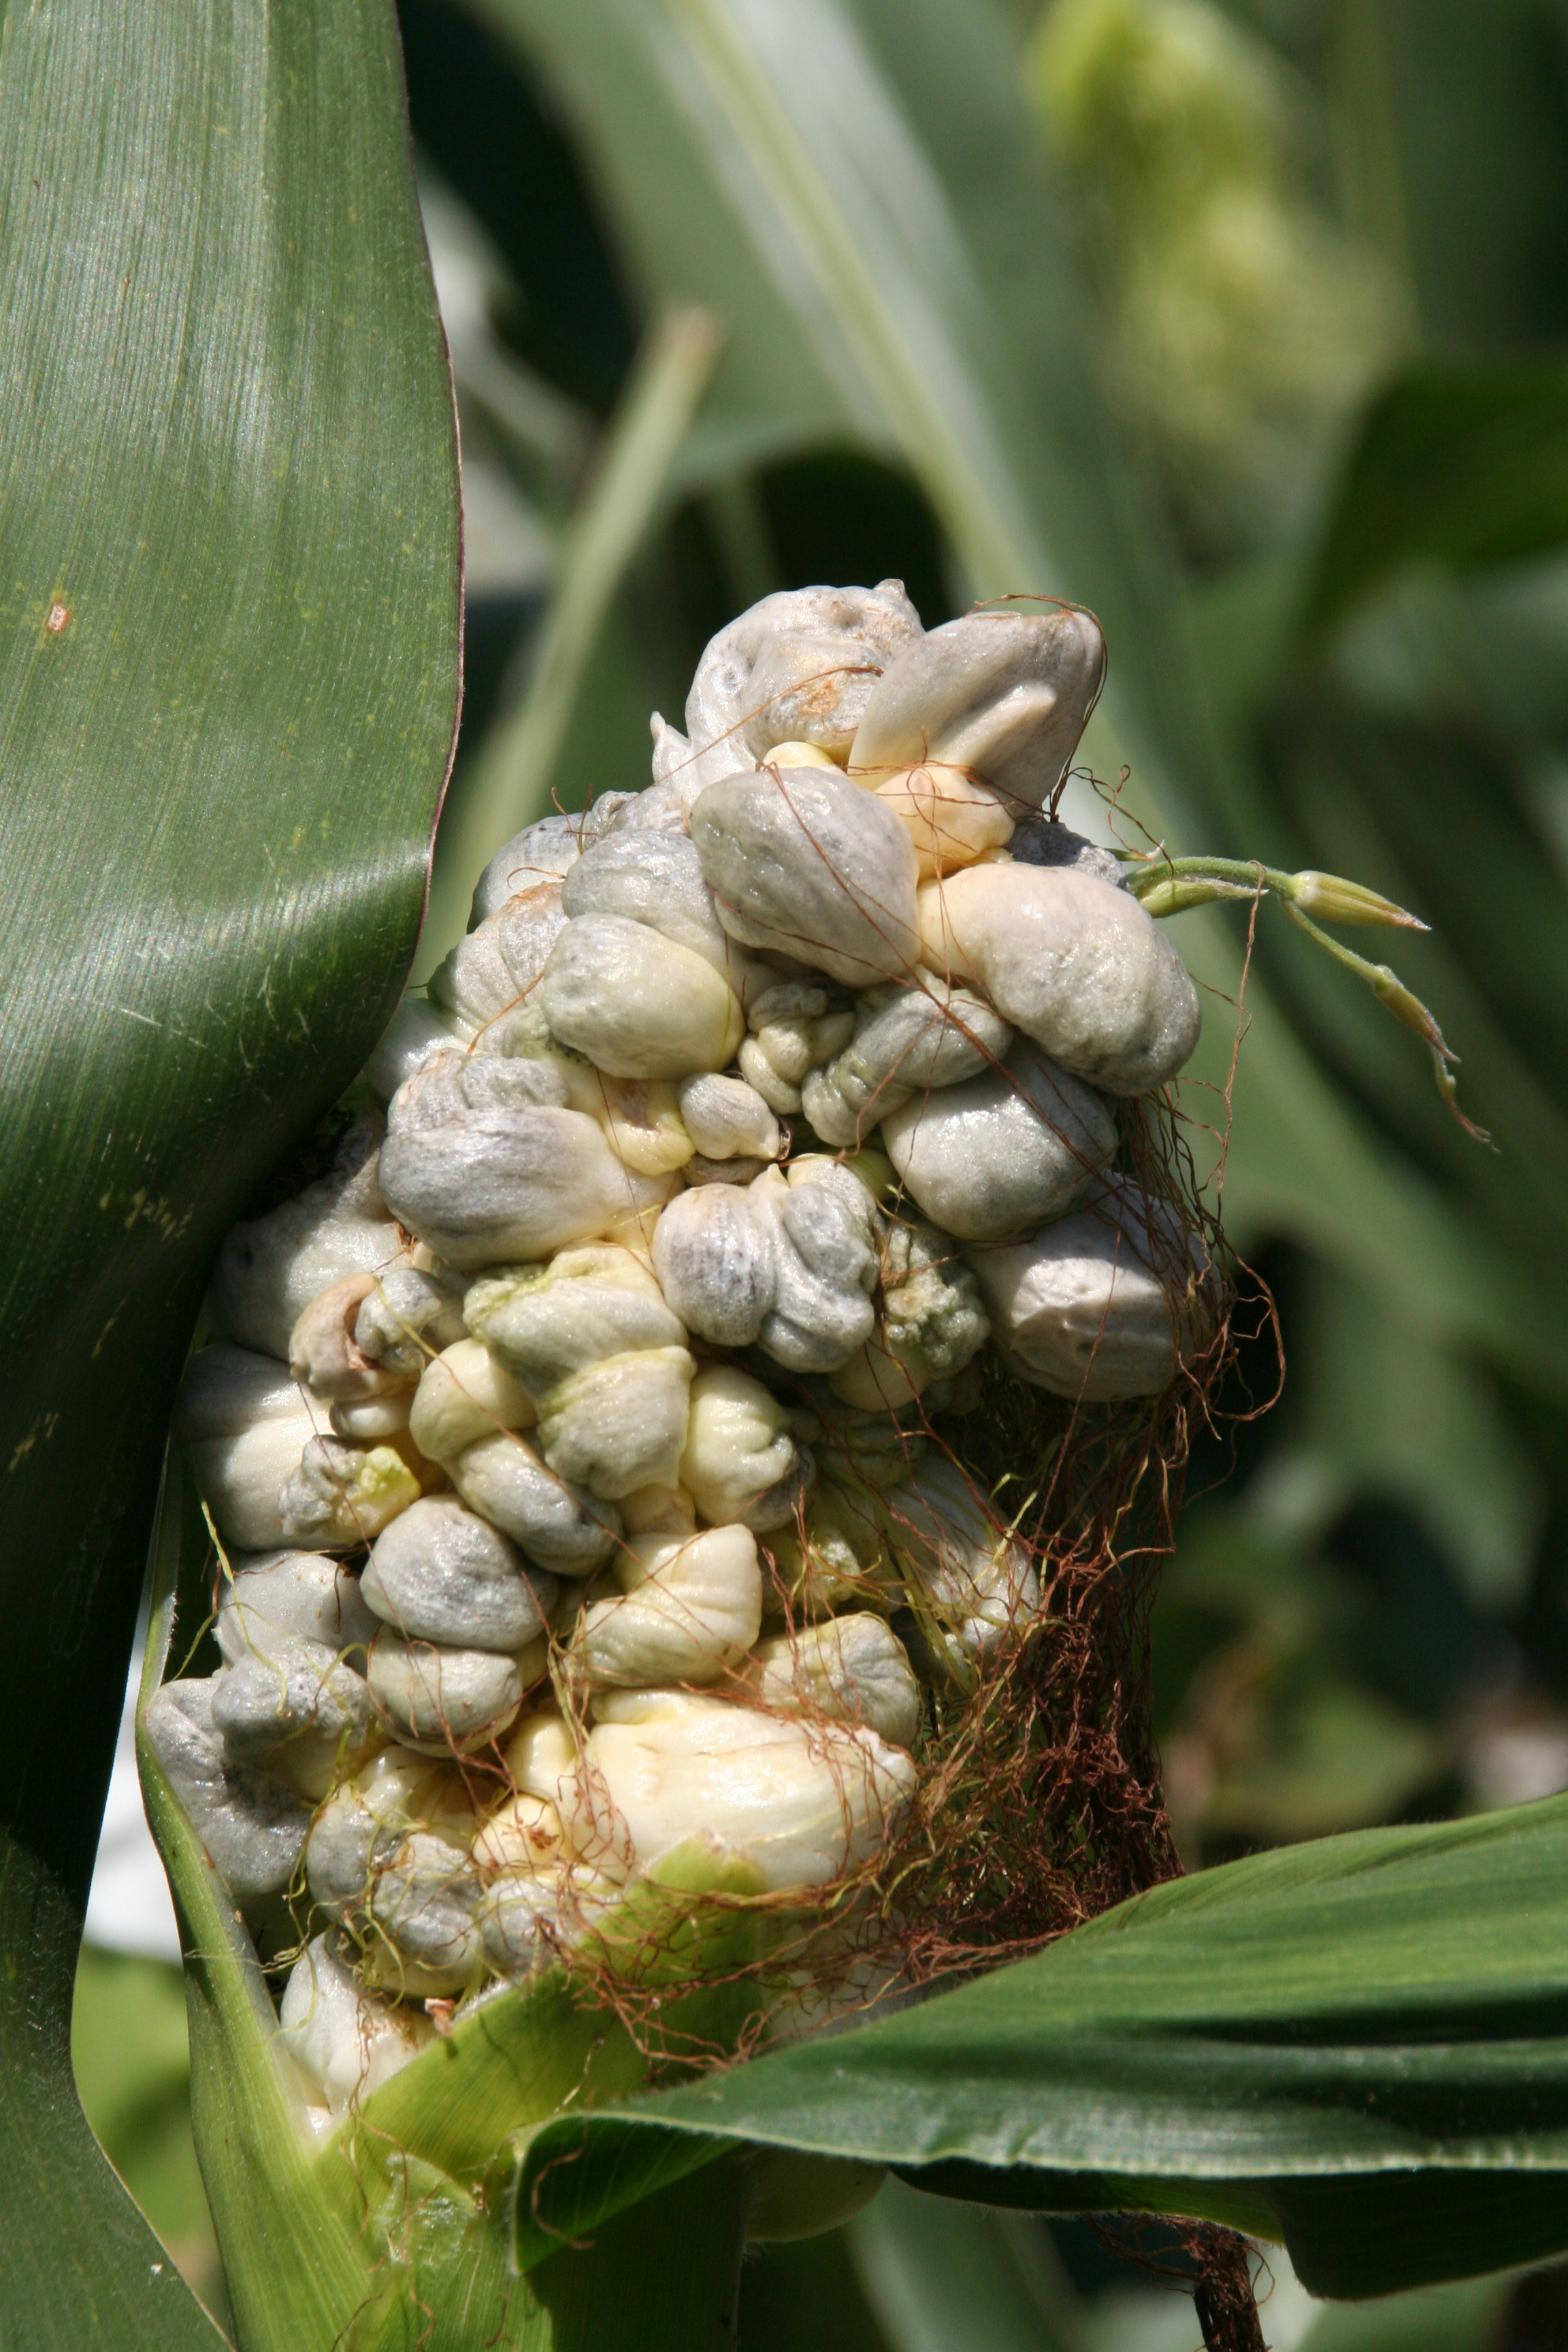 Common smut galls forming on ear.